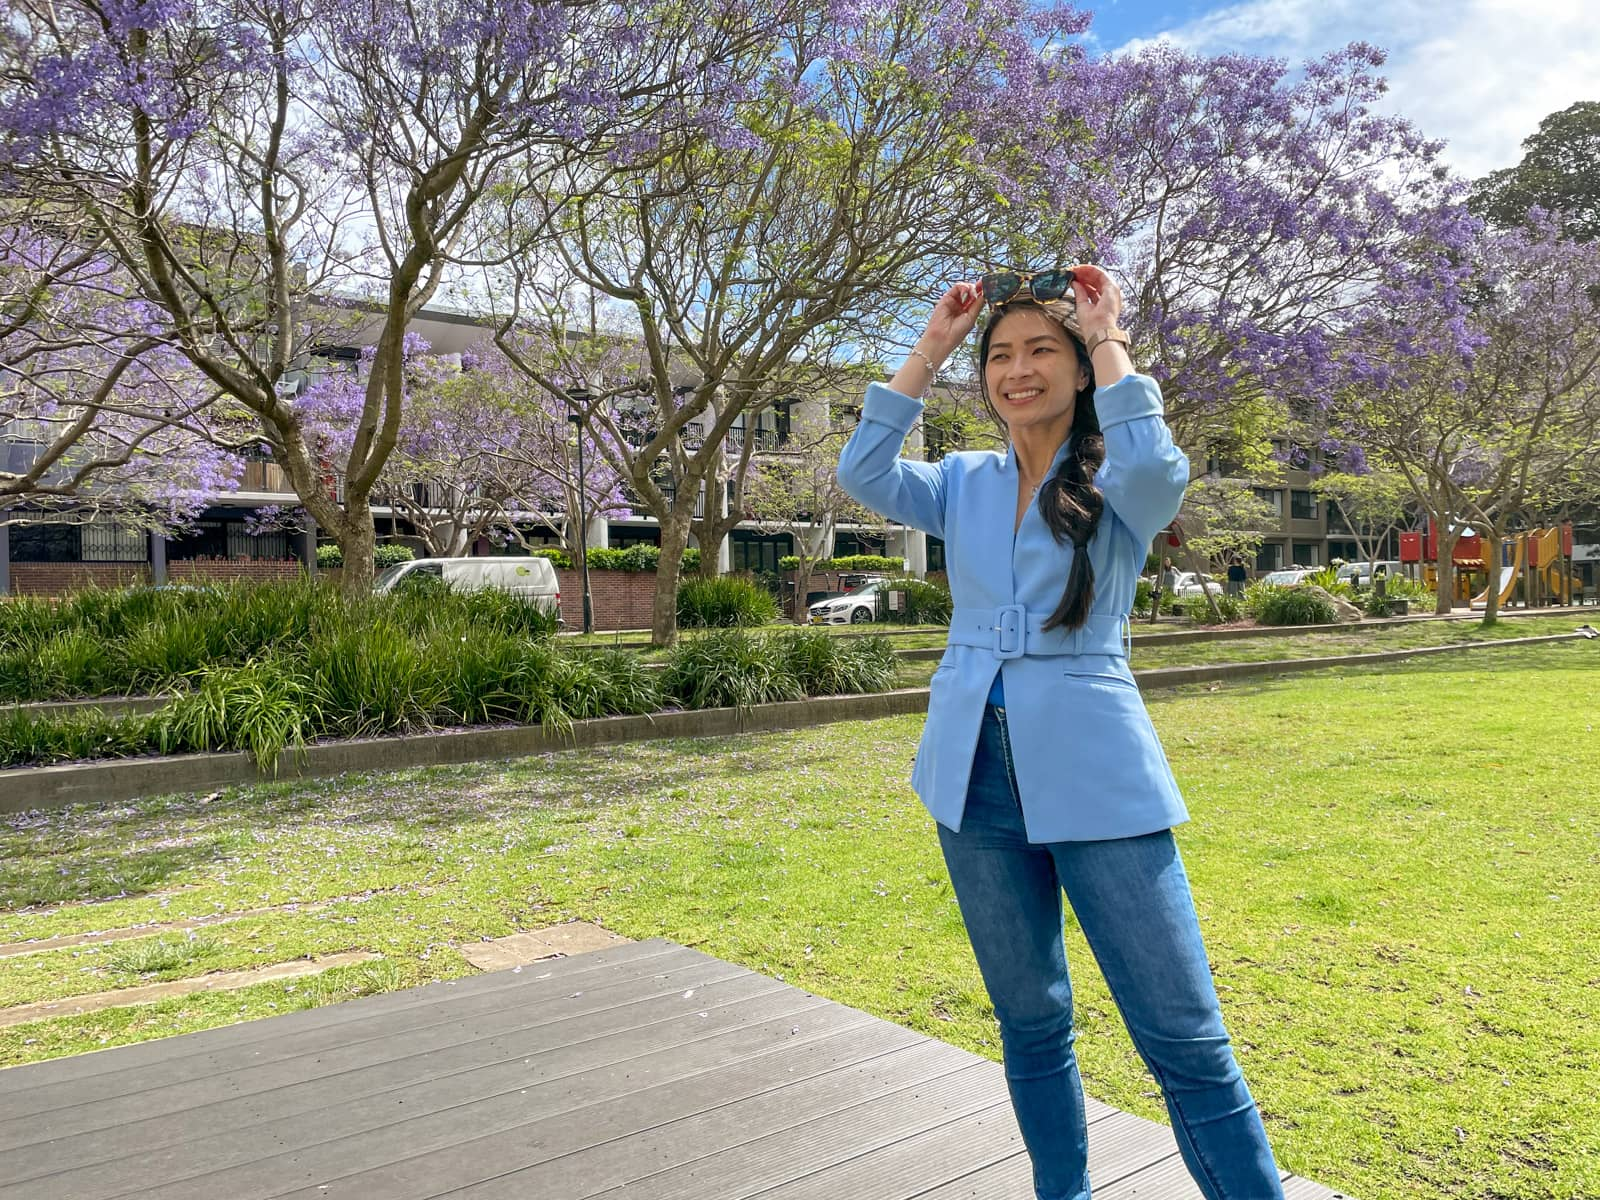 A woman with fair skin and long dark hair braided loosely in a side braid. She is wearing a light blue blazer and blue jeans and is holding her sunglasses on top of her head. She is grinning. In the background are jacaranda trees in a park